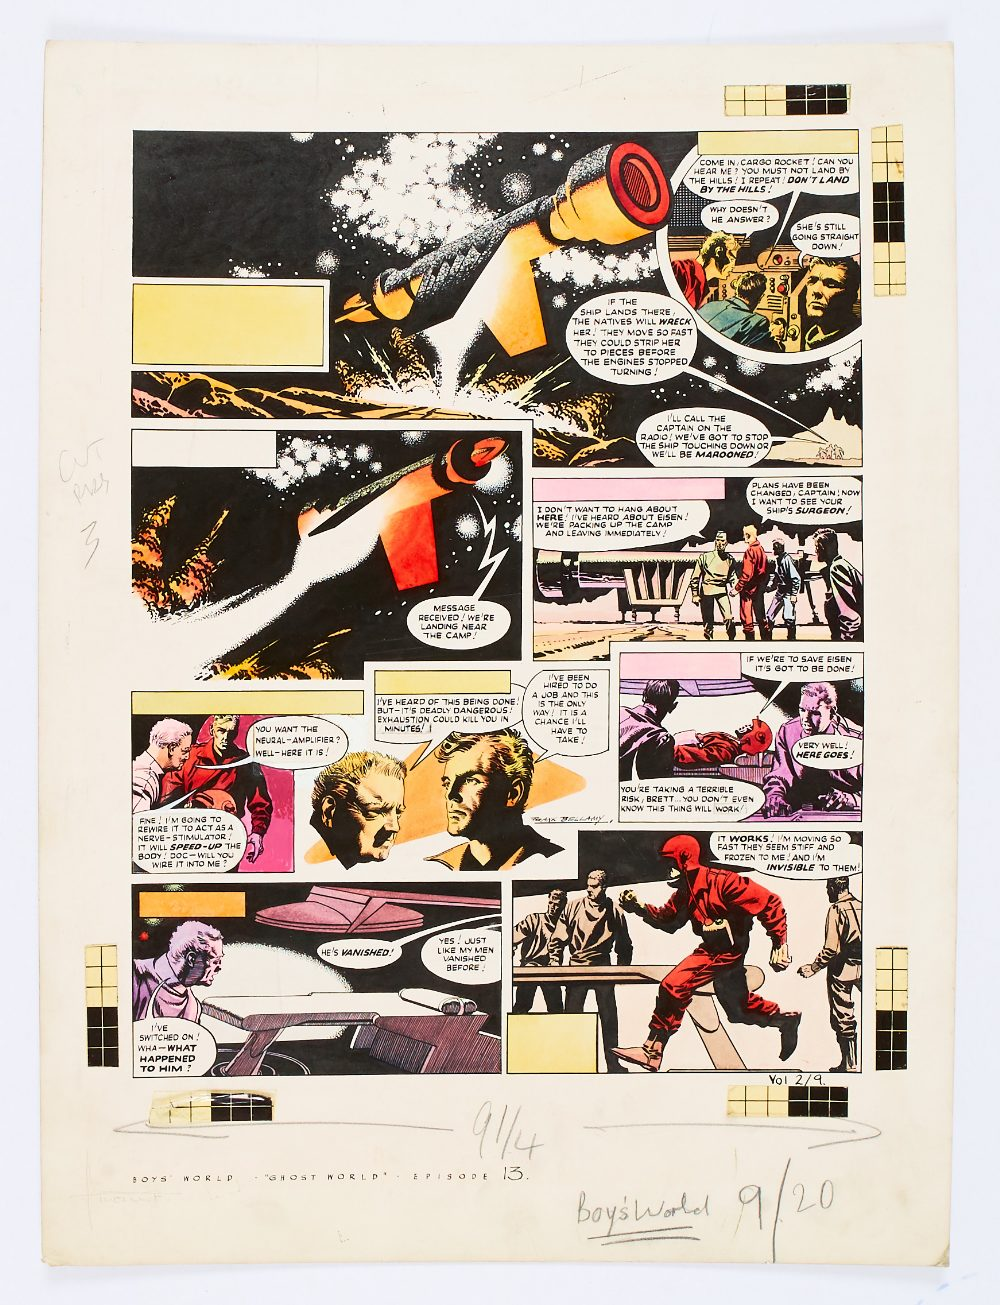 Lot 92 - Boy's World/Brett Million and the Ghost World original artwork (1963) drawn, painted and signed by